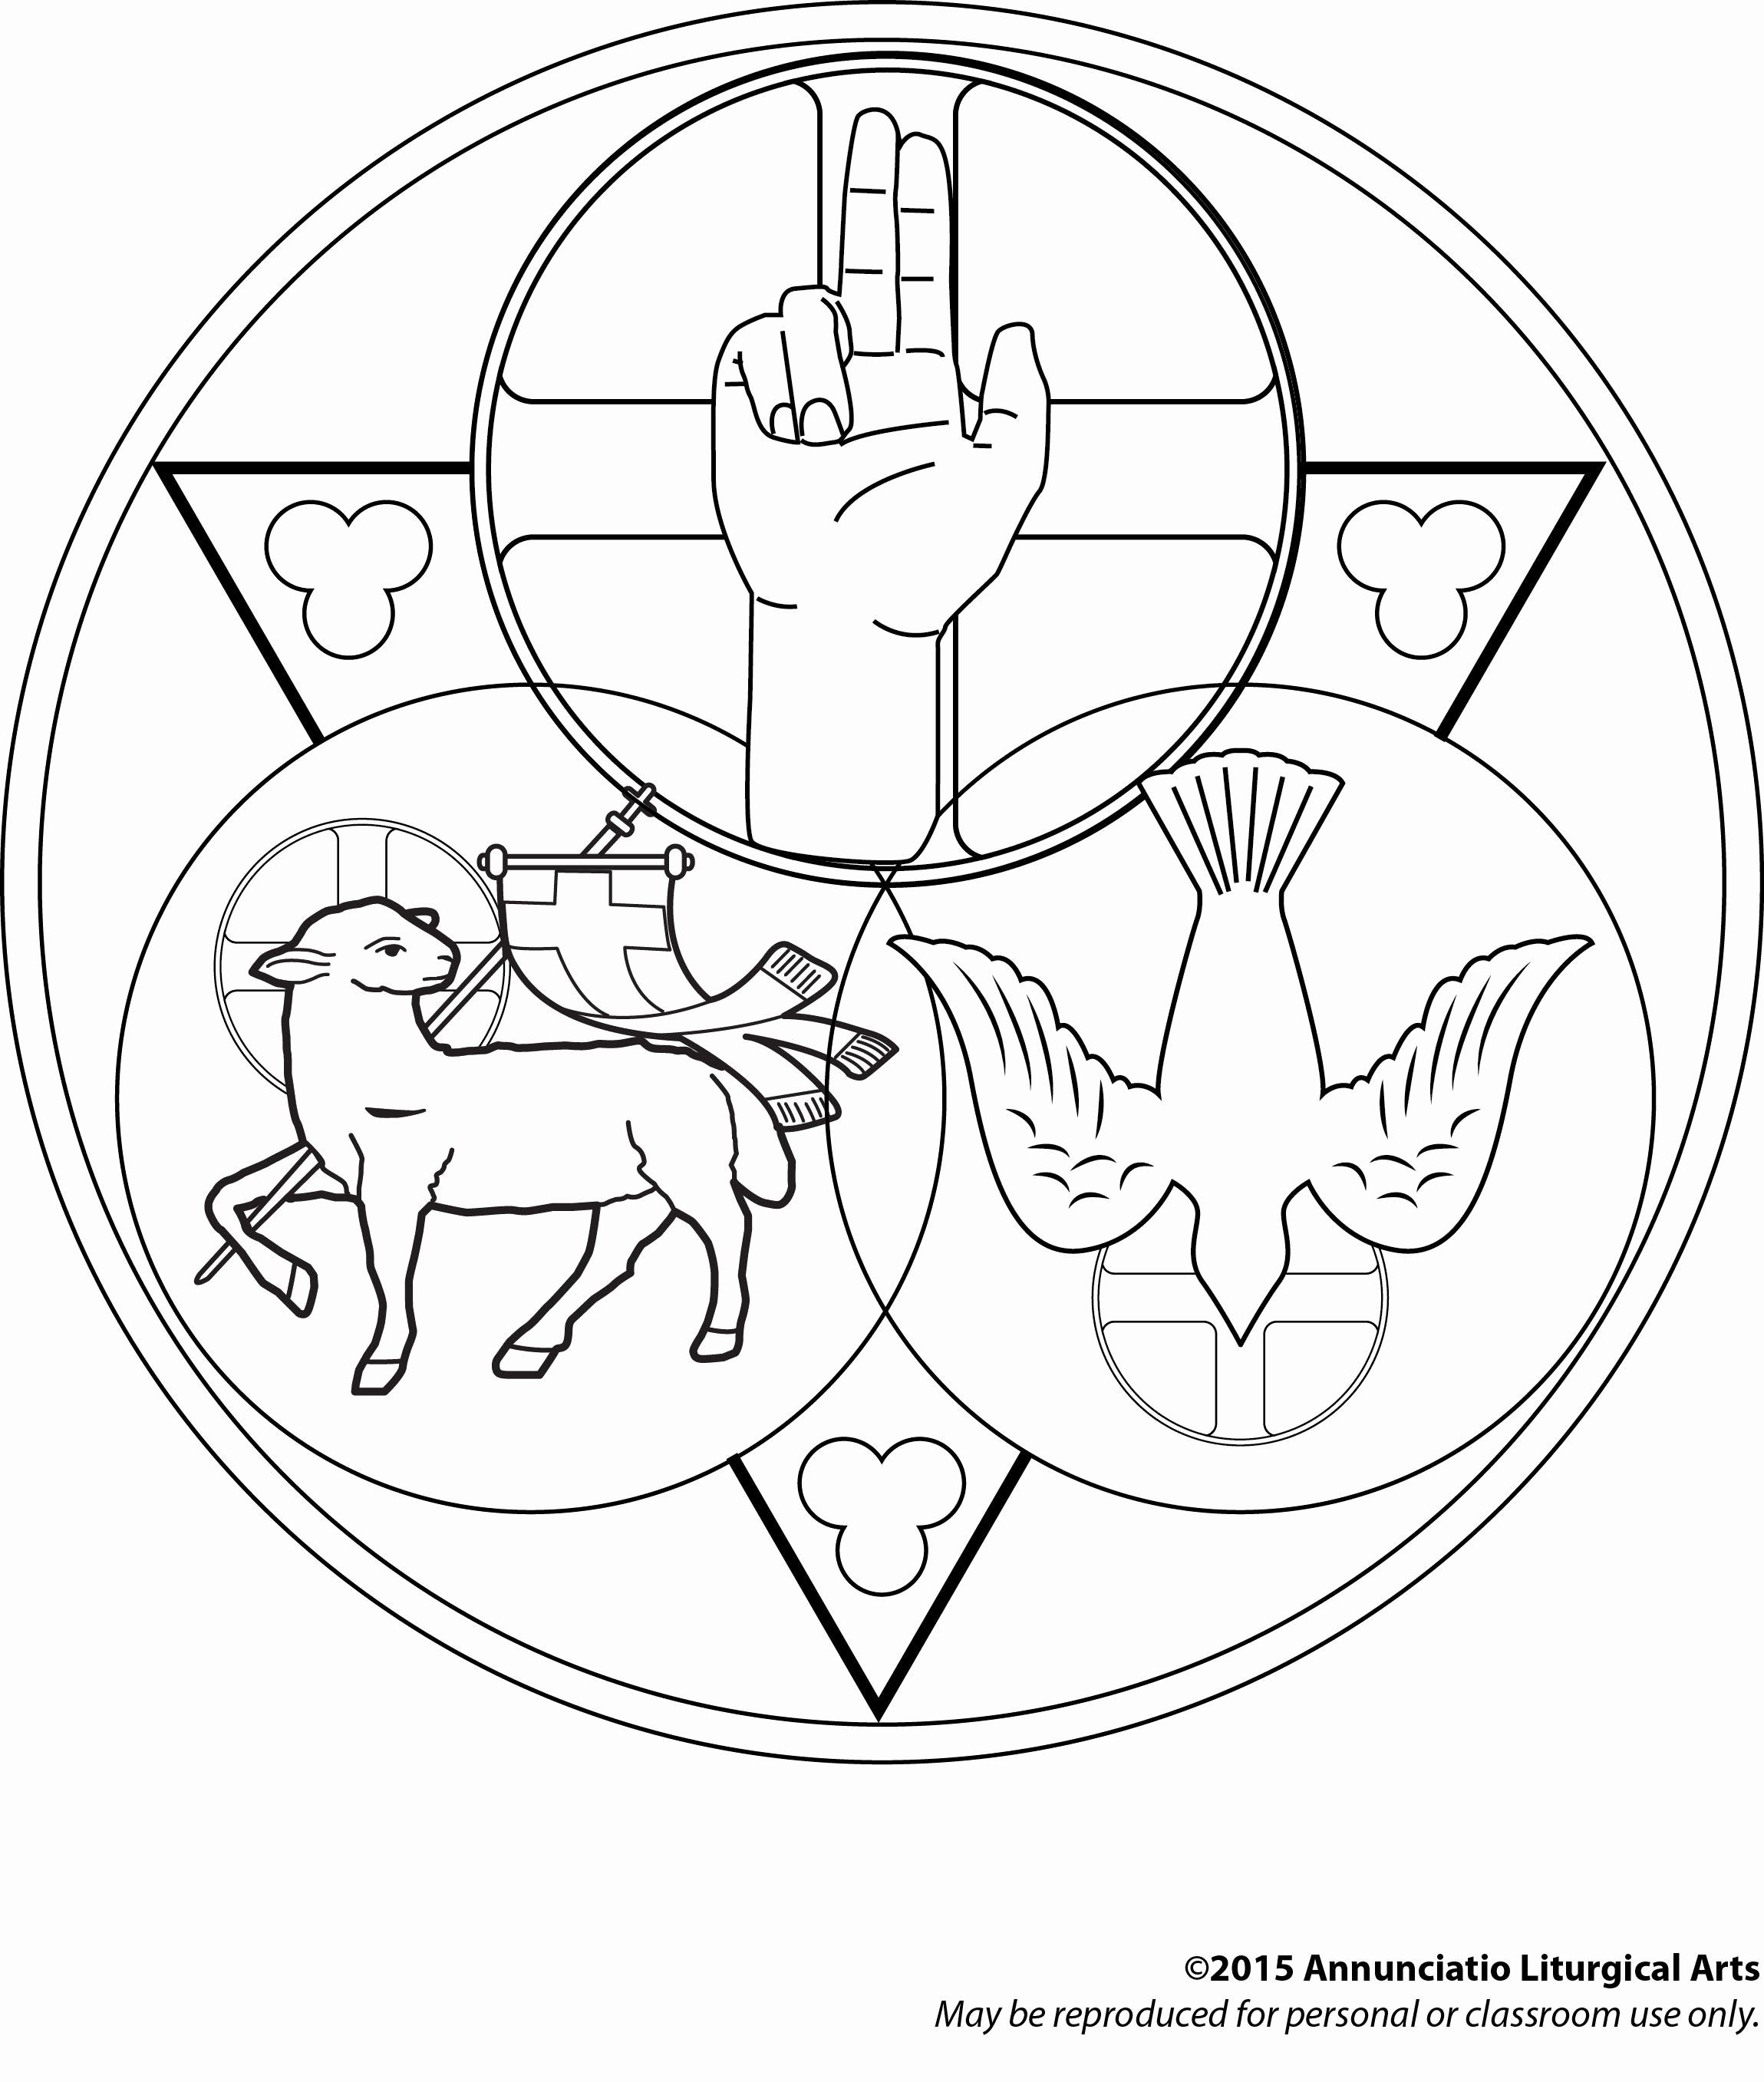 Holy Trinity Coloring Page Elegant Holy Trinity Coloring Page At Getcolorings